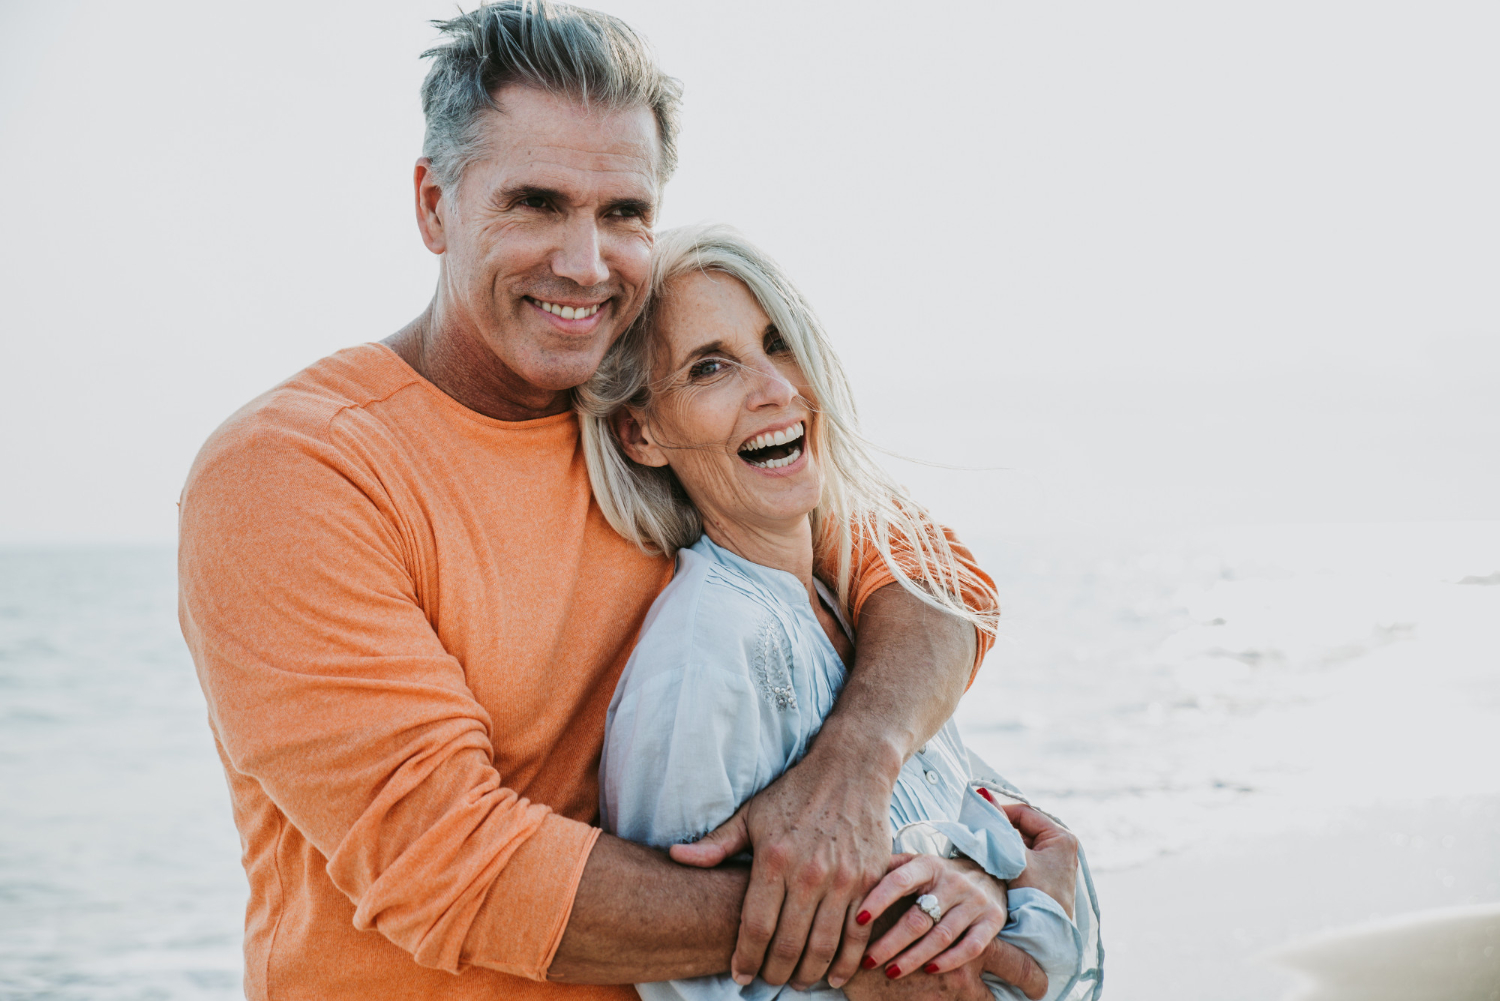 Elderly couple hugging and smiling on a beach.